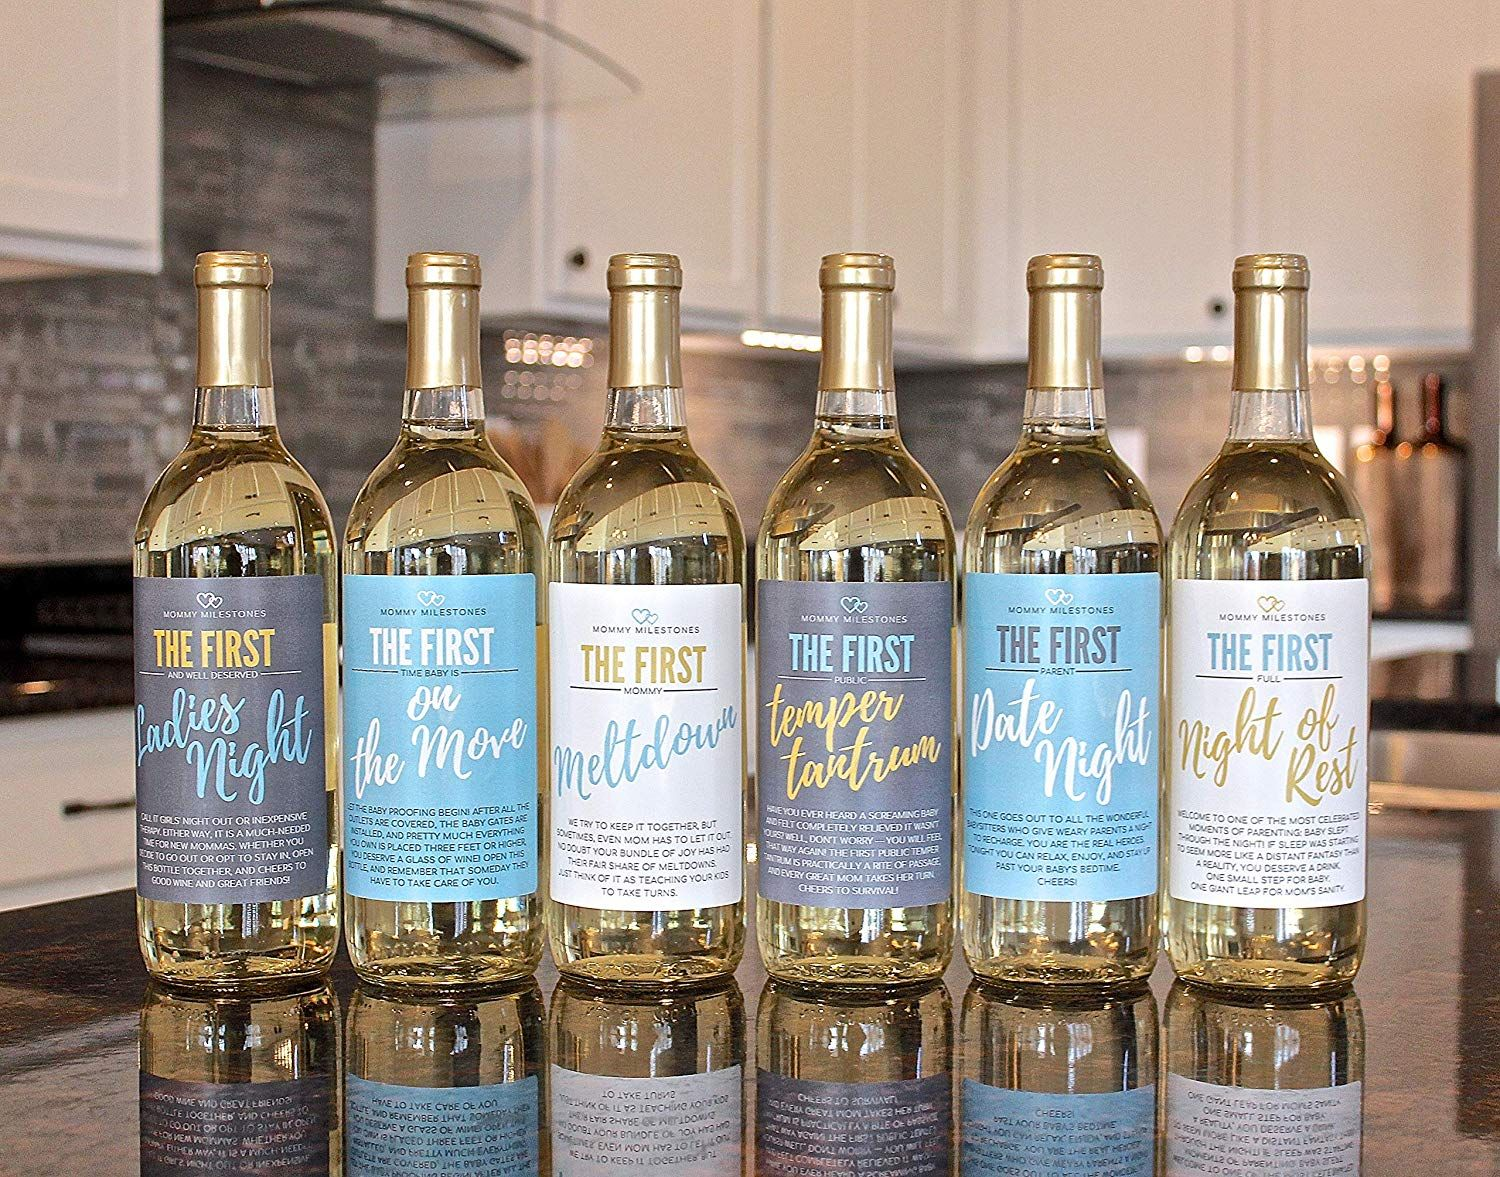 Bridal Shower Wine Bottle Labels for Engagement Party Set of 5 Year of Firsts Milestone Designs by Bliss Paper Boutique Bachelorette Party or Wedding Gift